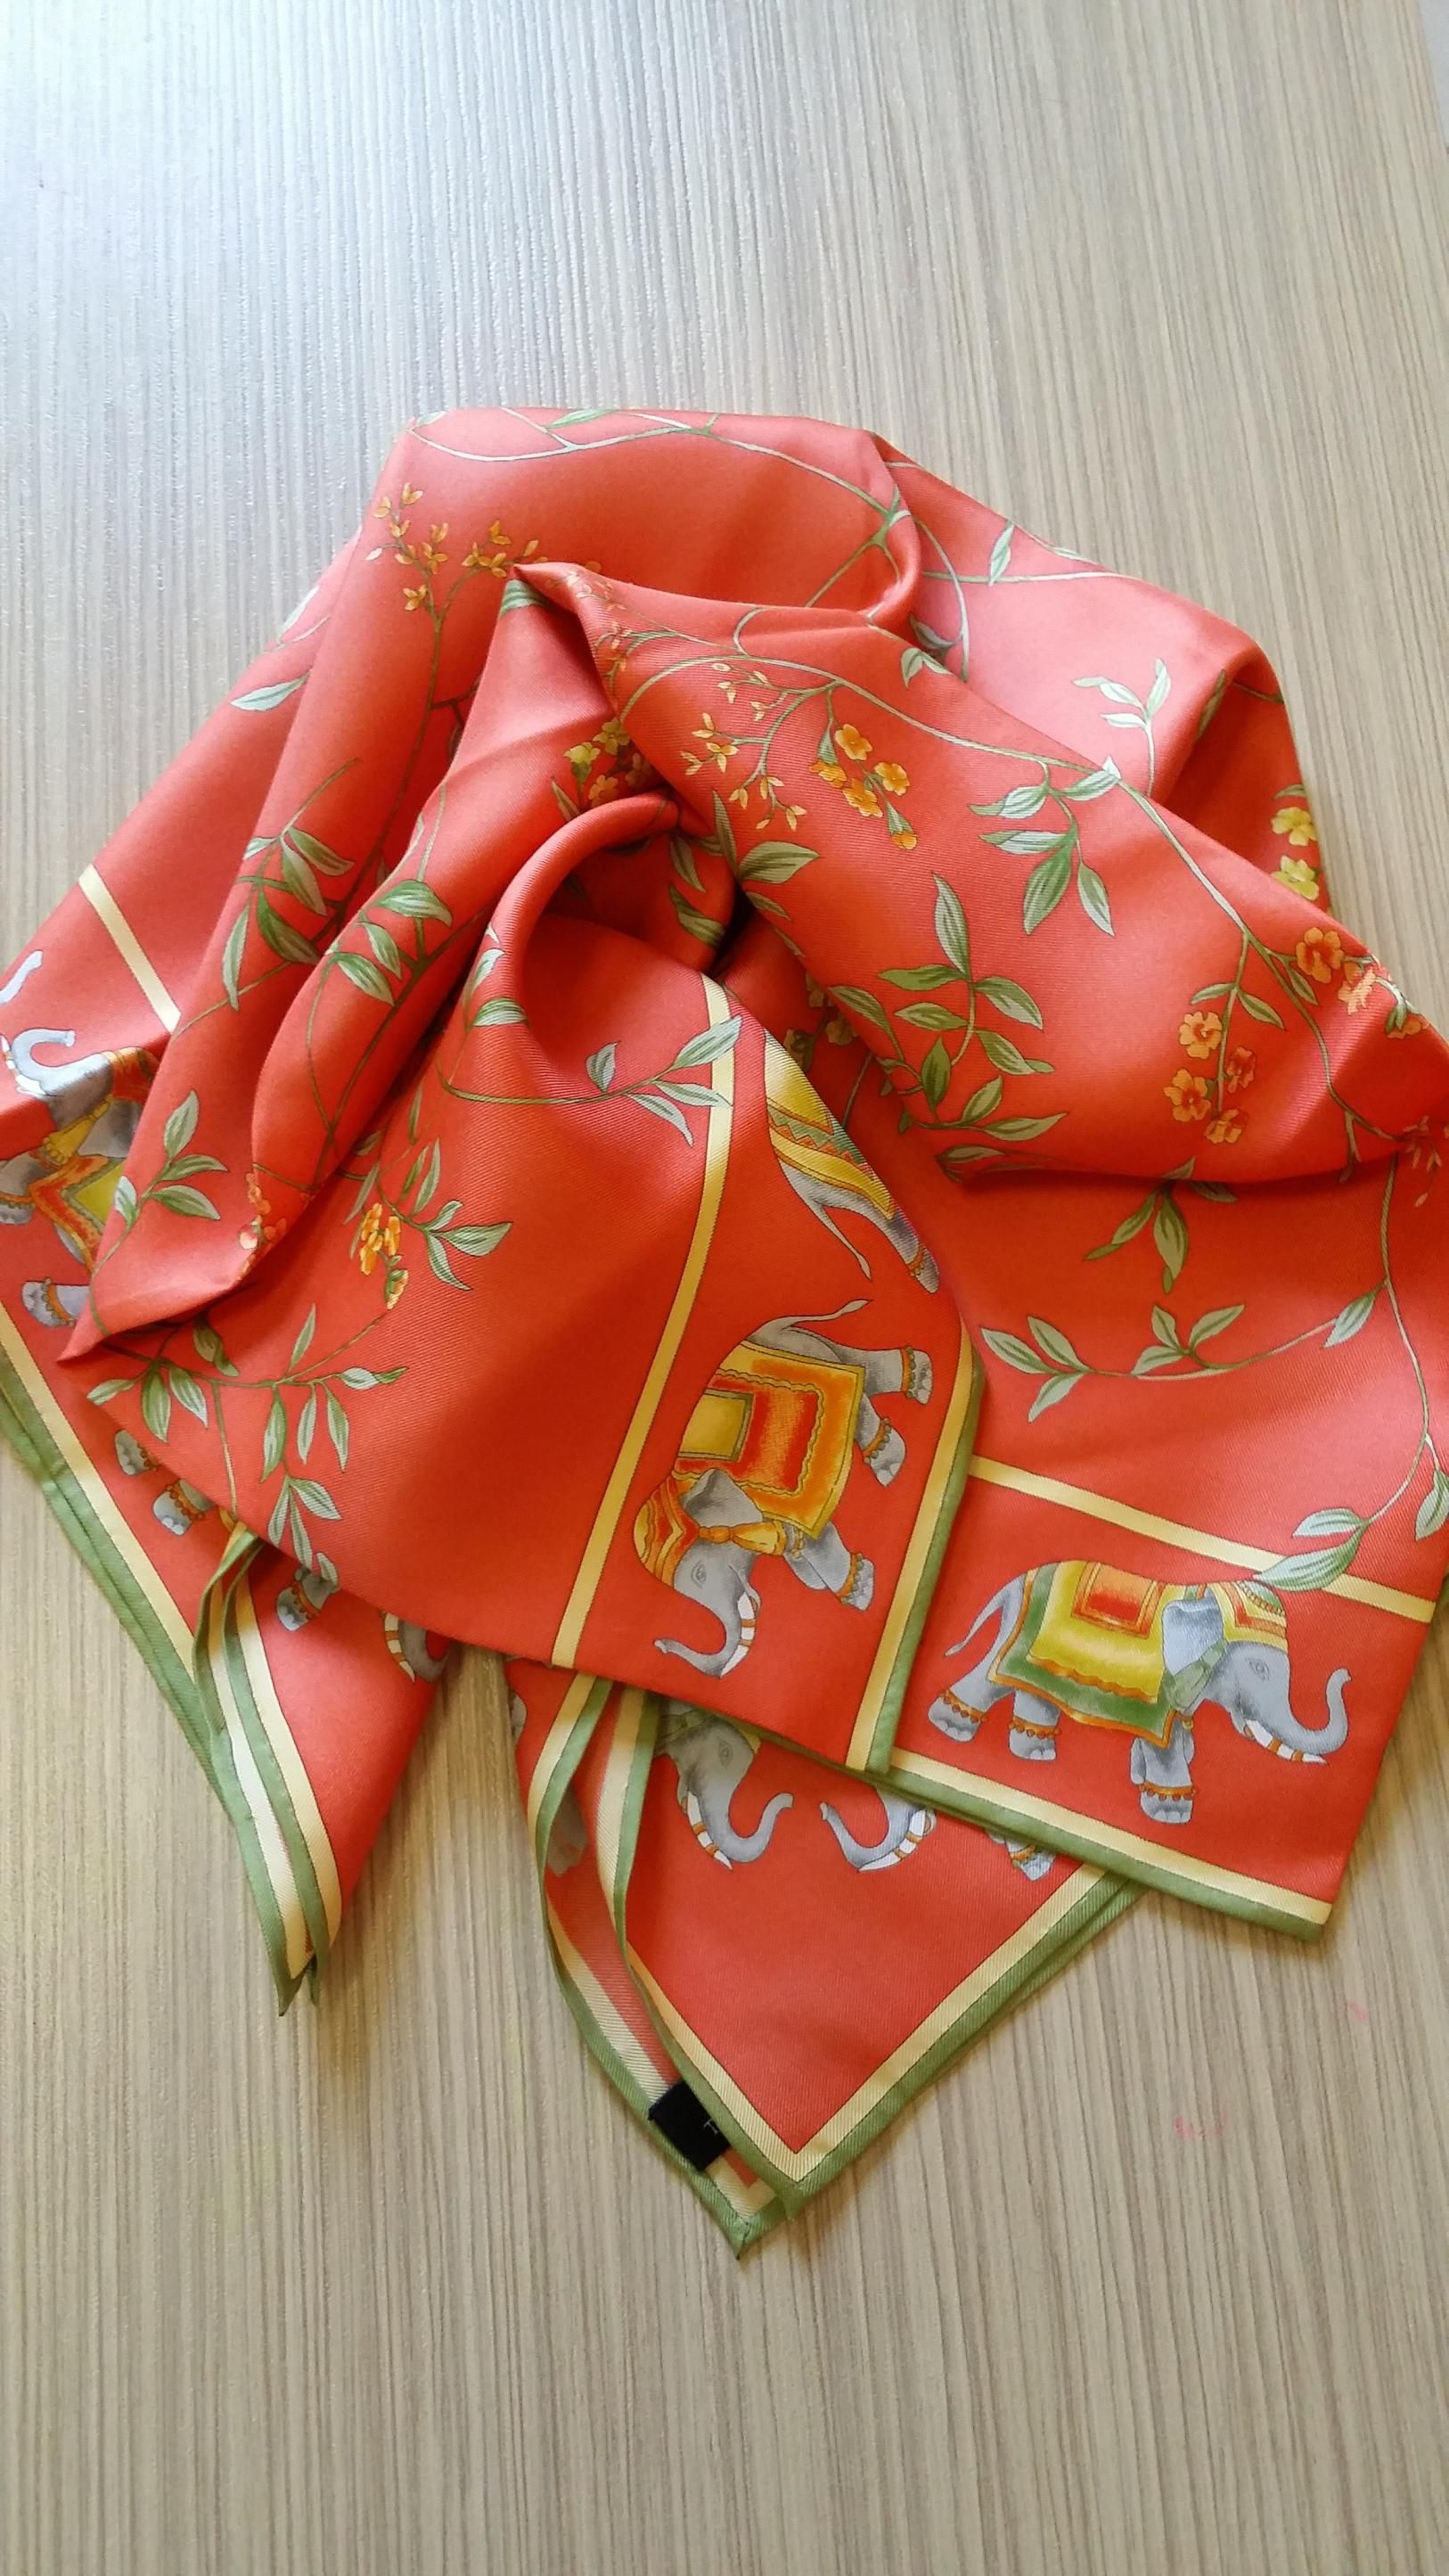 Discover   Buy on our Online Shop All Jim Thompson Scarves   100% Silk.  Made in Thailand by the famous Jim Thompson House. 83cm   83cm 55d5a7d794